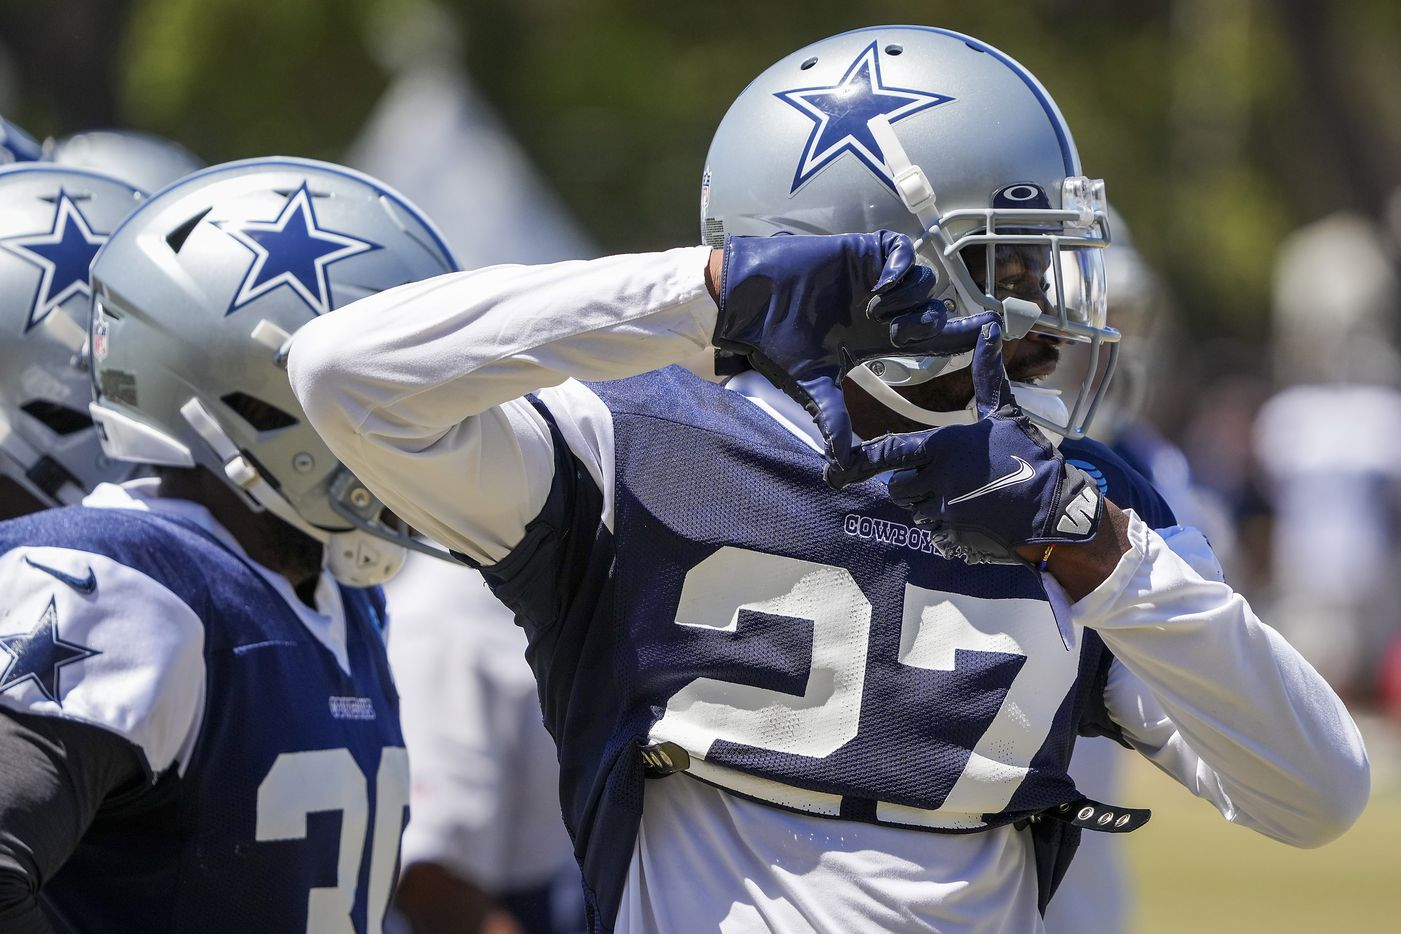 Dallas Cowboys cornerback Trevon Diggs (27) signals to teammates during a practice at training camp on Sunday, Aug. 1, 2021, in Oxnard, Calif.